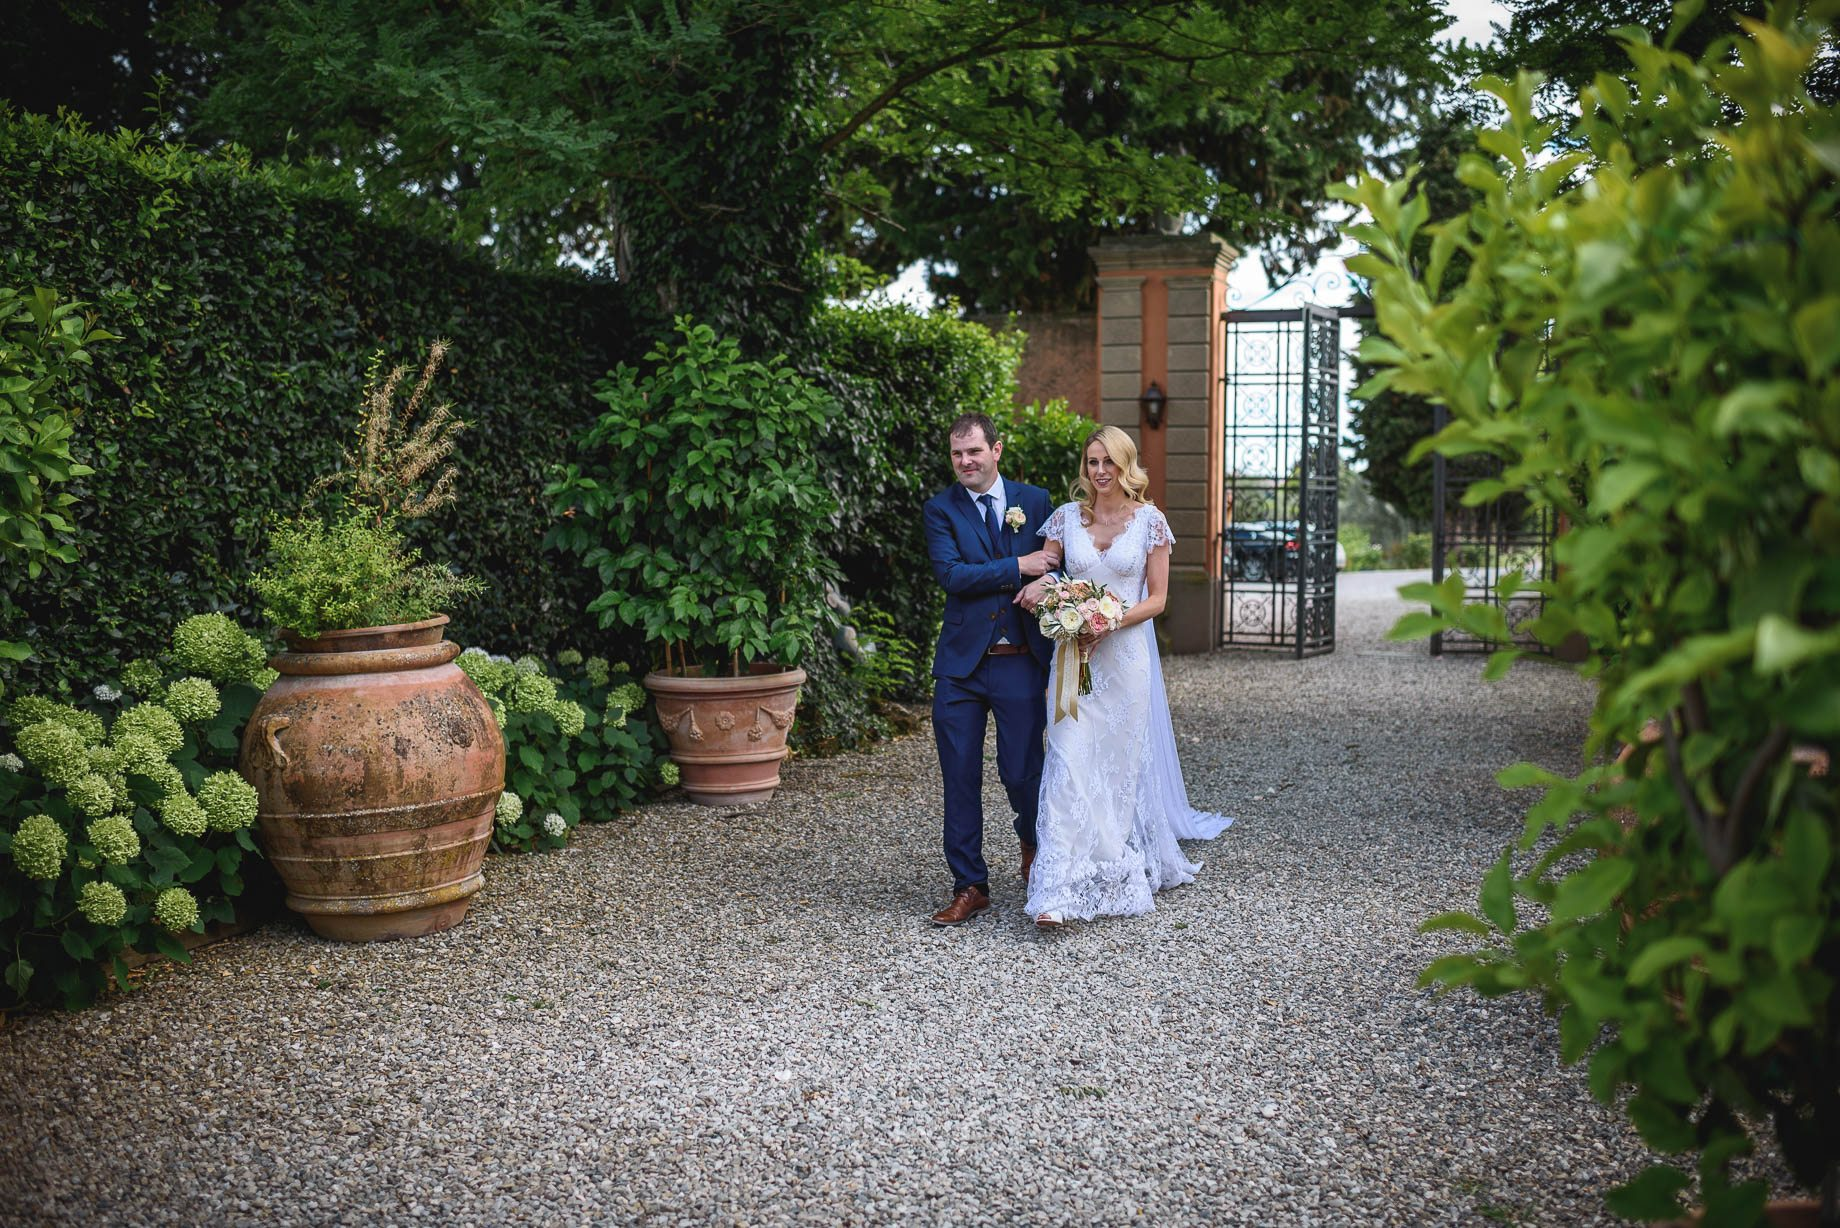 Tuscany wedding photography - Roisin and Moubin - Guy Collier Photography (104 of 251)